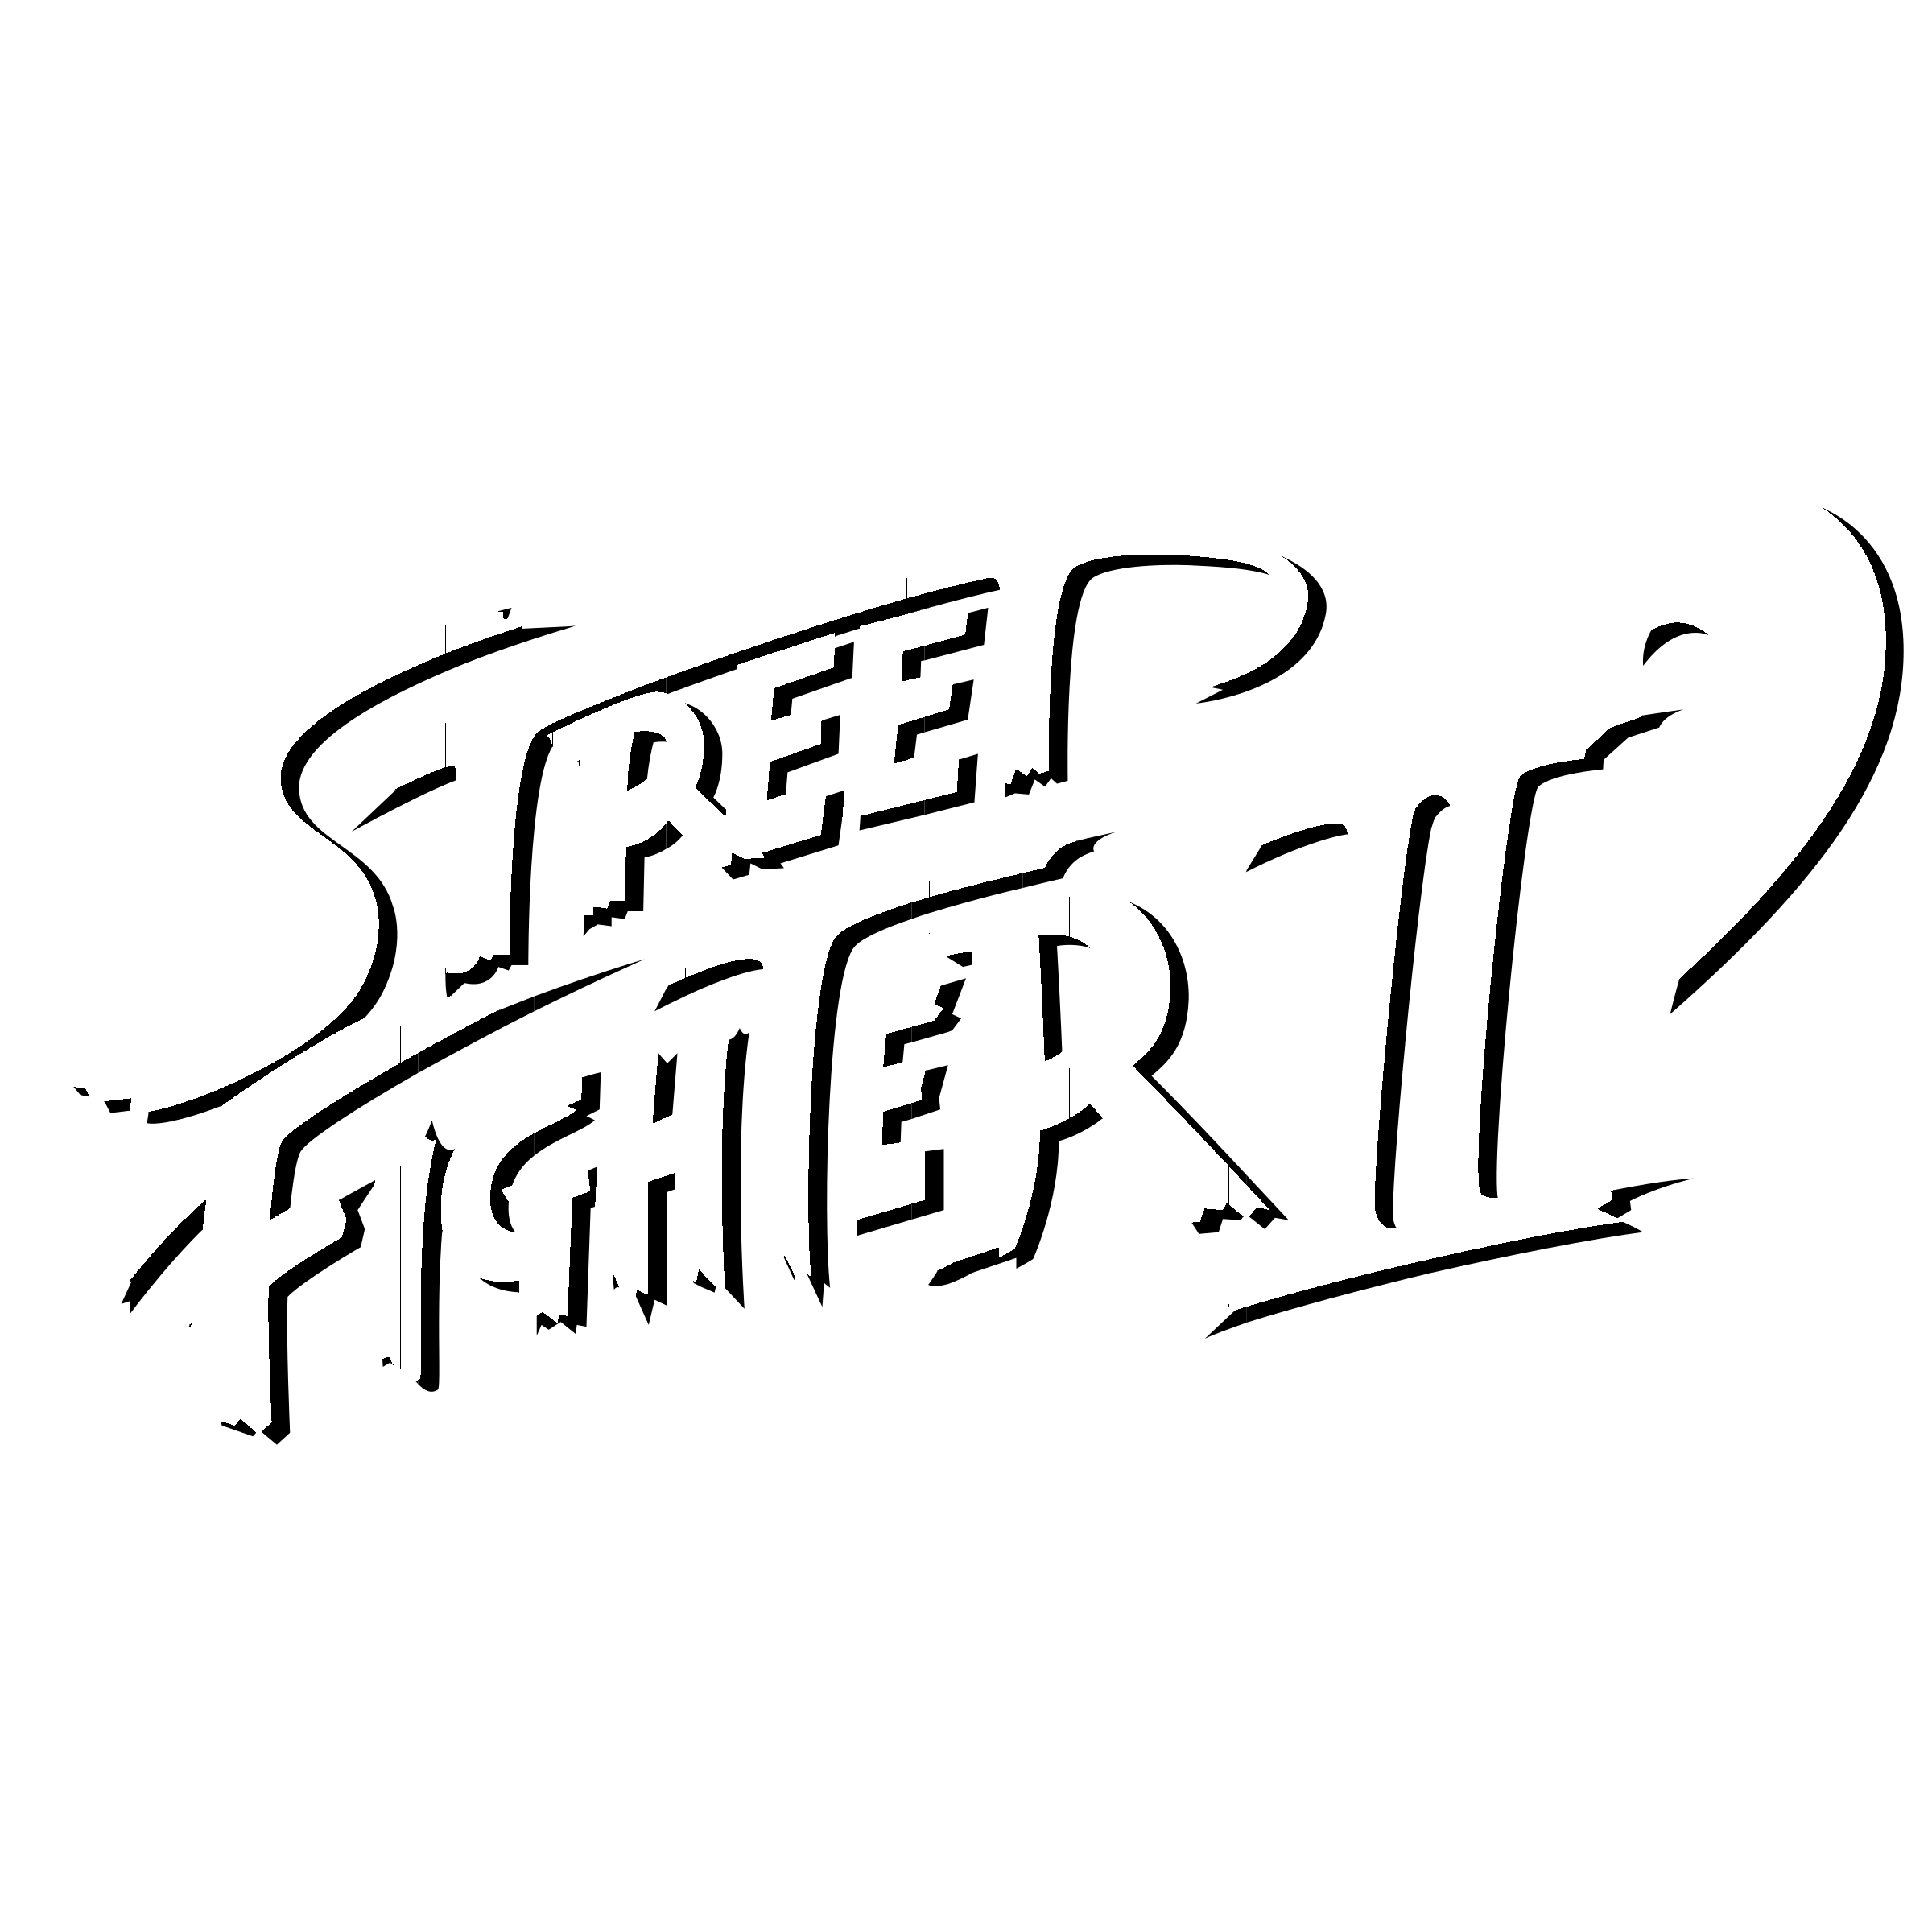 Street Fighter Ii Logo Png Transparent Svg Vector Freebie Supply